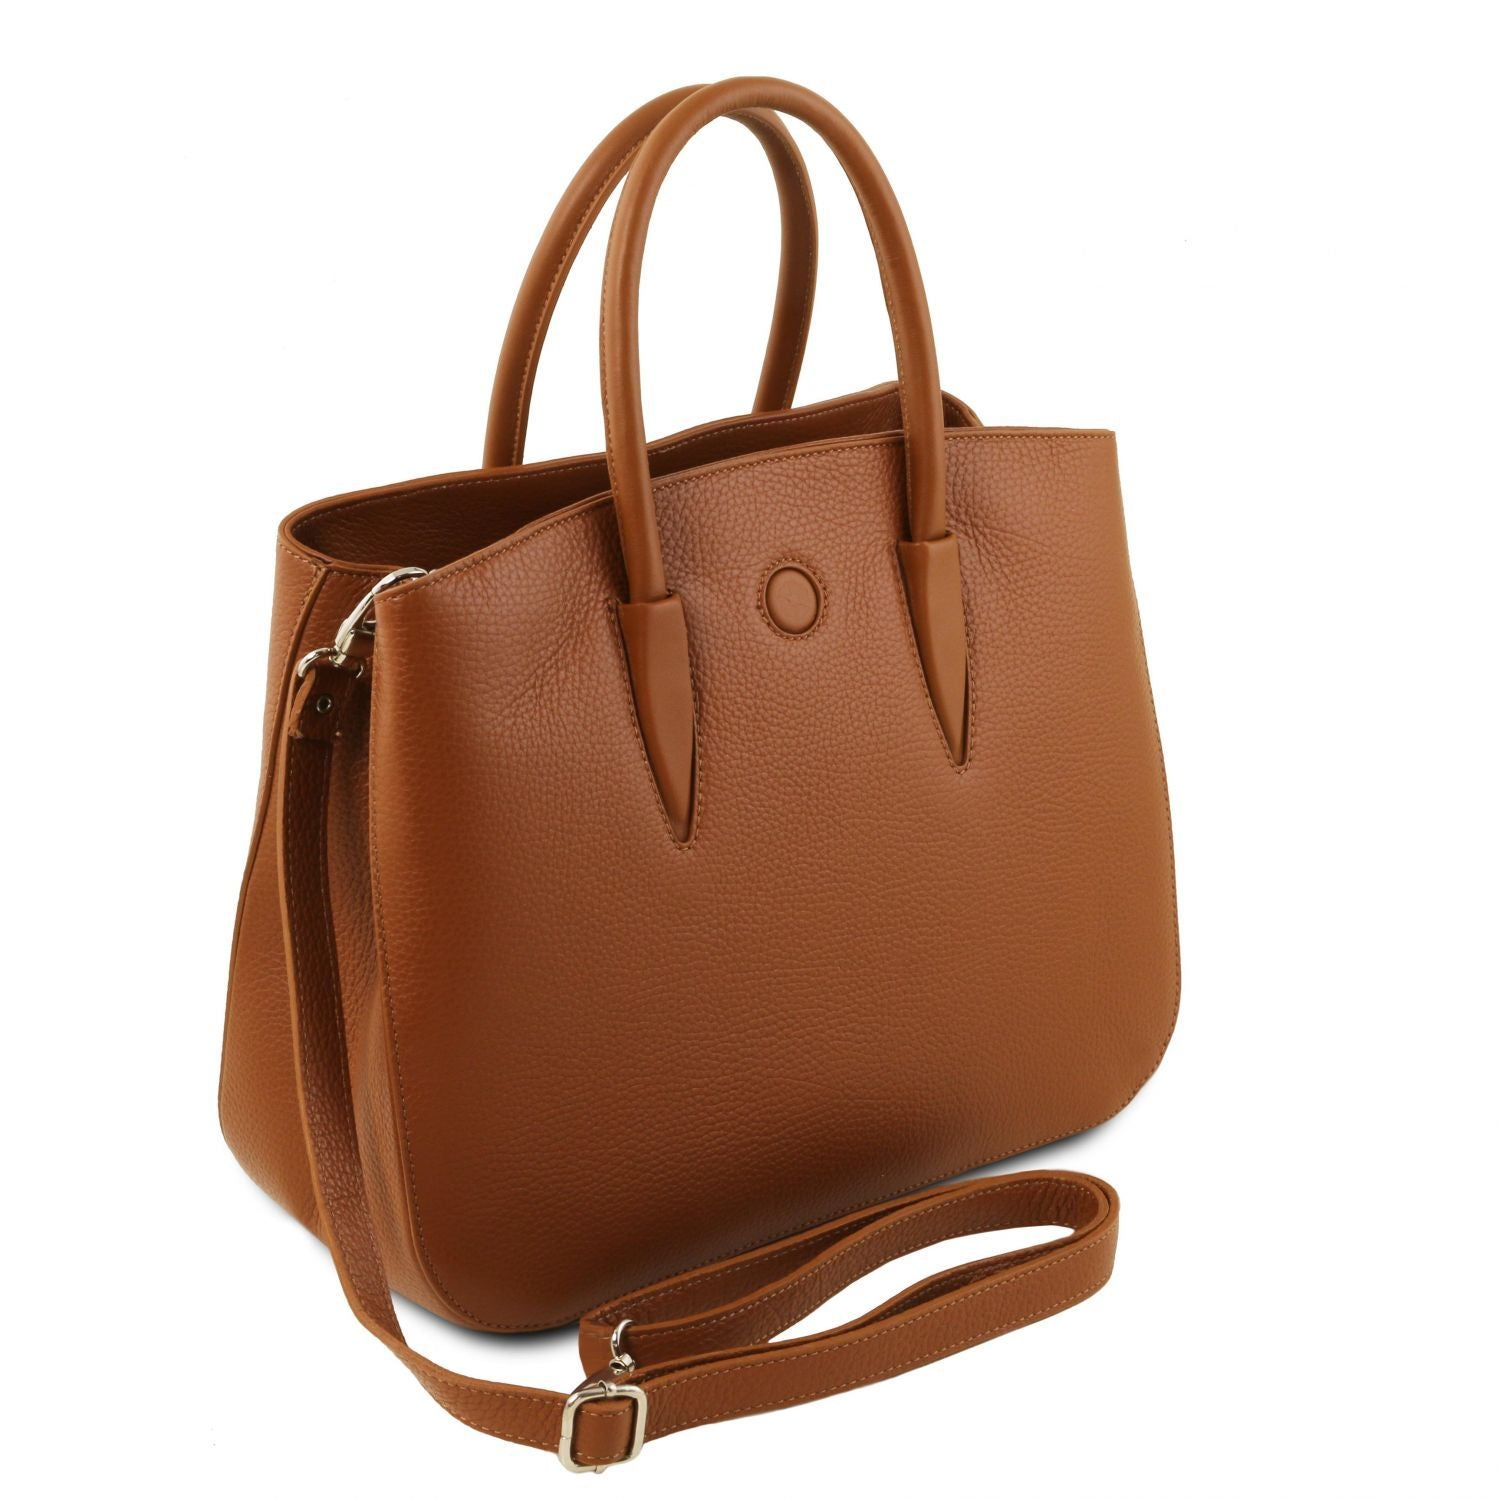 Camelia - Leather handbag (TL141728) - Leather handbags | DILUSSOBAGS